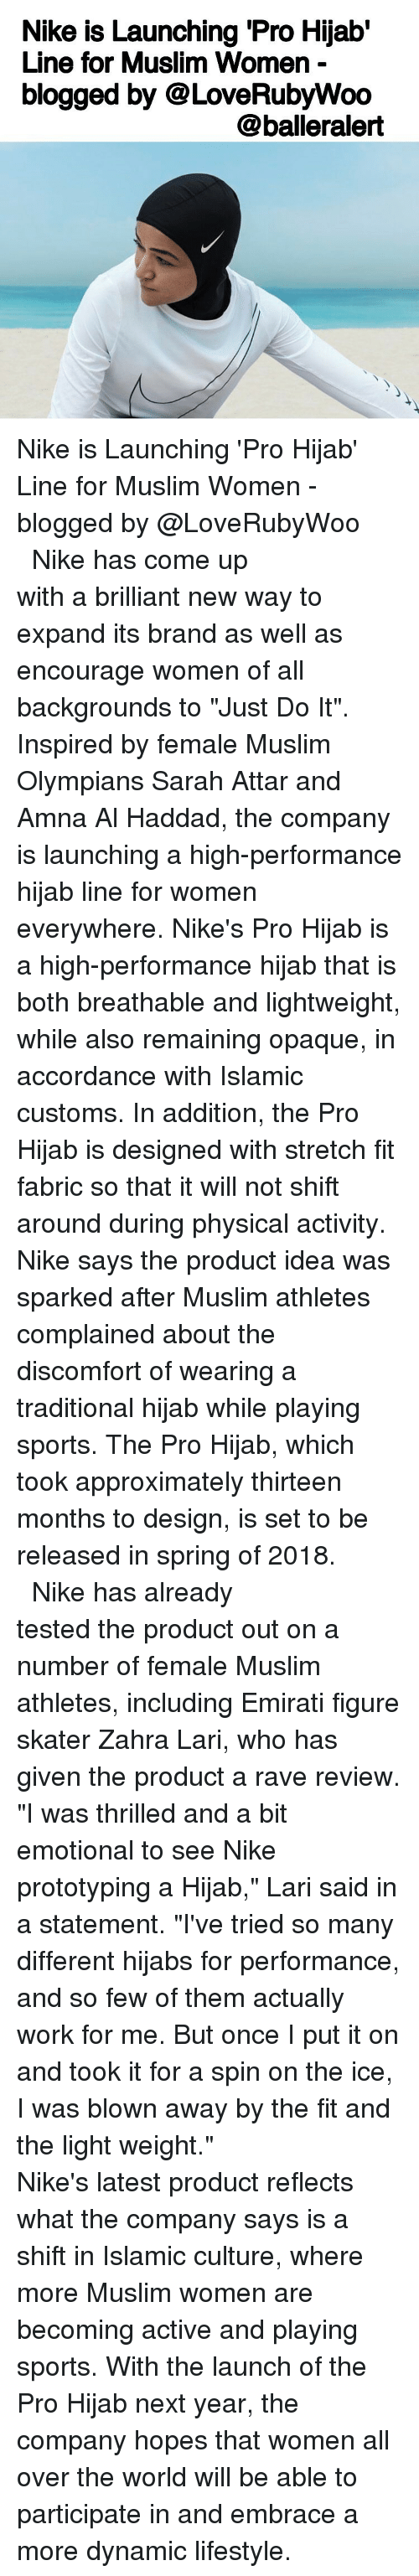 """A Rave: Nike is Launching Pro Hijab'  Line for Muslim Women  blogged by @LoveRubyWoo  @balleralert Nike is Launching 'Pro Hijab' Line for Muslim Women - blogged by @LoveRubyWoo ⠀⠀⠀⠀⠀⠀⠀⠀⠀ ⠀⠀⠀⠀⠀⠀⠀⠀⠀ Nike has come up with a brilliant new way to expand its brand as well as encourage women of all backgrounds to """"Just Do It"""". Inspired by female Muslim Olympians Sarah Attar and Amna Al Haddad, the company is launching a high-performance hijab line for women everywhere. Nike's Pro Hijab is a high-performance hijab that is both breathable and lightweight, while also remaining opaque, in accordance with Islamic customs. In addition, the Pro Hijab is designed with stretch fit fabric so that it will not shift around during physical activity. Nike says the product idea was sparked after Muslim athletes complained about the discomfort of wearing a traditional hijab while playing sports. The Pro Hijab, which took approximately thirteen months to design, is set to be released in spring of 2018. ⠀⠀⠀⠀⠀⠀⠀⠀⠀ ⠀⠀⠀⠀⠀⠀⠀⠀⠀ Nike has already tested the product out on a number of female Muslim athletes, including Emirati figure skater Zahra Lari, who has given the product a rave review. """"I was thrilled and a bit emotional to see Nike prototyping a Hijab,"""" Lari said in a statement. """"I've tried so many different hijabs for performance, and so few of them actually work for me. But once I put it on and took it for a spin on the ice, I was blown away by the fit and the light weight."""" ⠀⠀⠀⠀⠀⠀⠀⠀⠀ ⠀⠀⠀⠀⠀⠀⠀⠀⠀ Nike's latest product reflects what the company says is a shift in Islamic culture, where more Muslim women are becoming active and playing sports. With the launch of the Pro Hijab next year, the company hopes that women all over the world will be able to participate in and embrace a more dynamic lifestyle."""